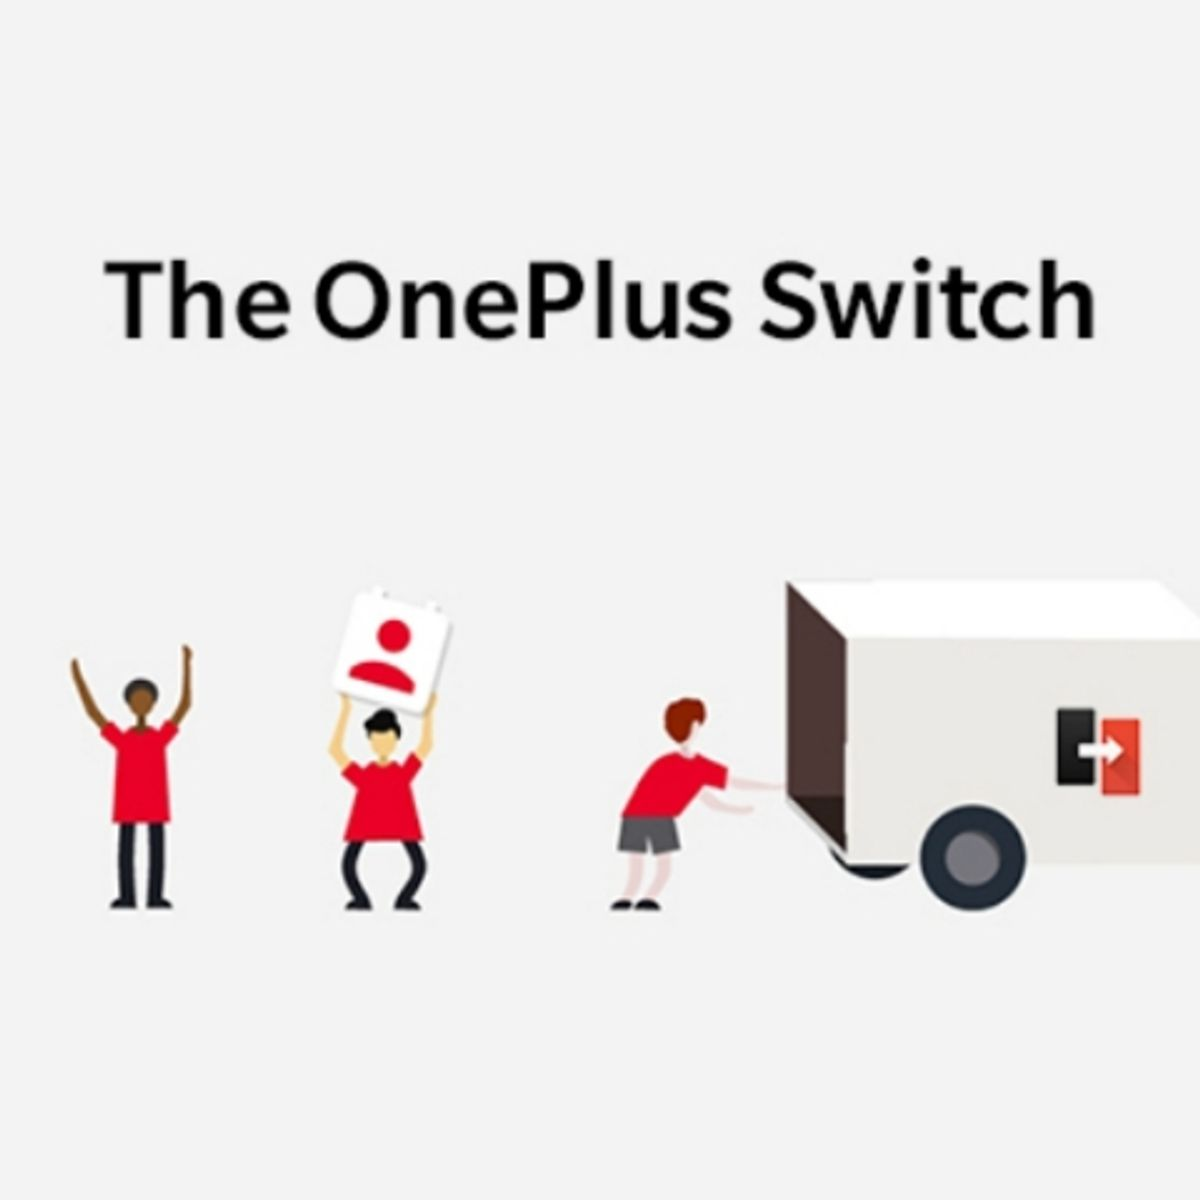 OnePlus Switch app can now transfer app data, downloads, and